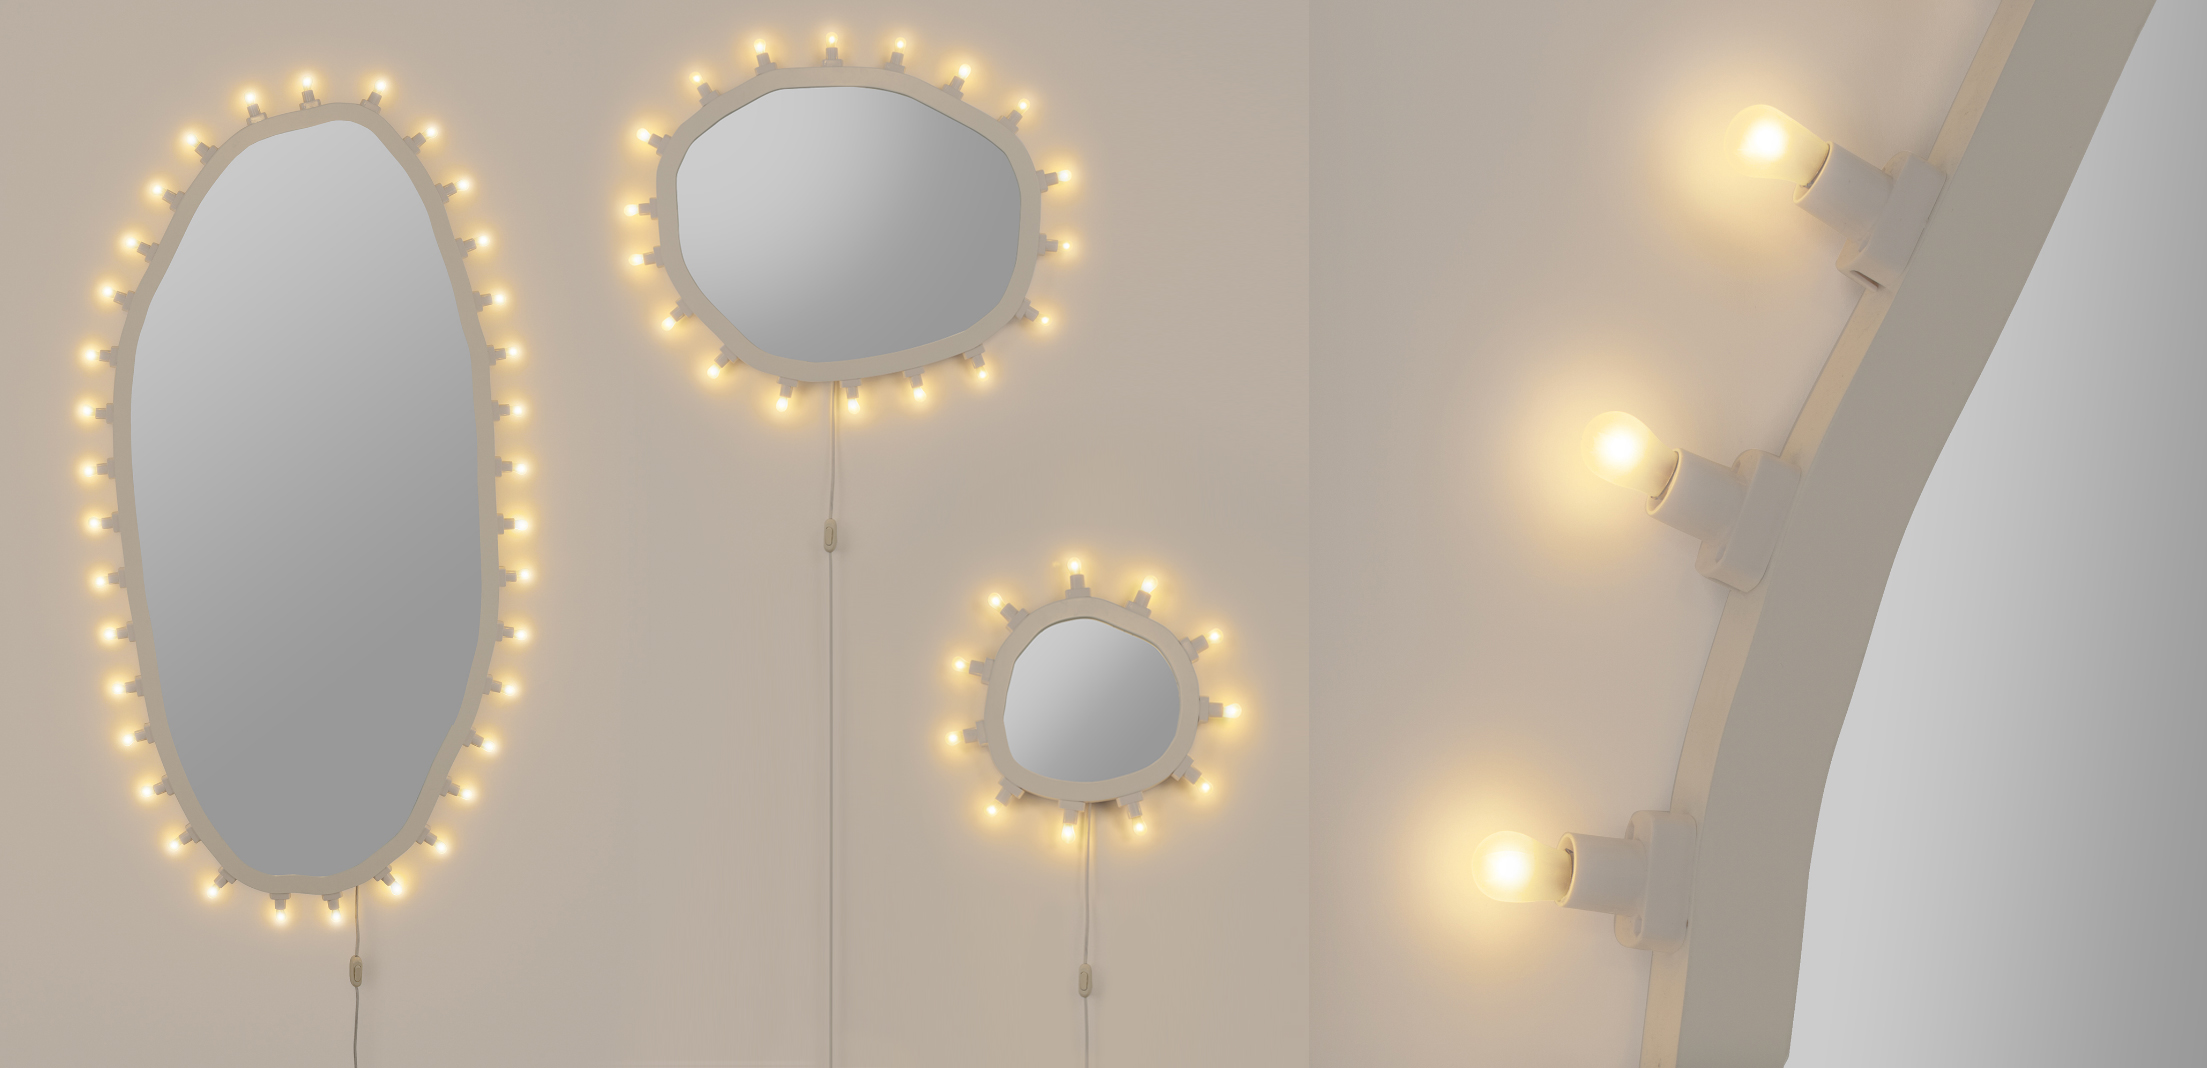 LUMINAIRE The lights of tradition in a mirror - Marcantonio design